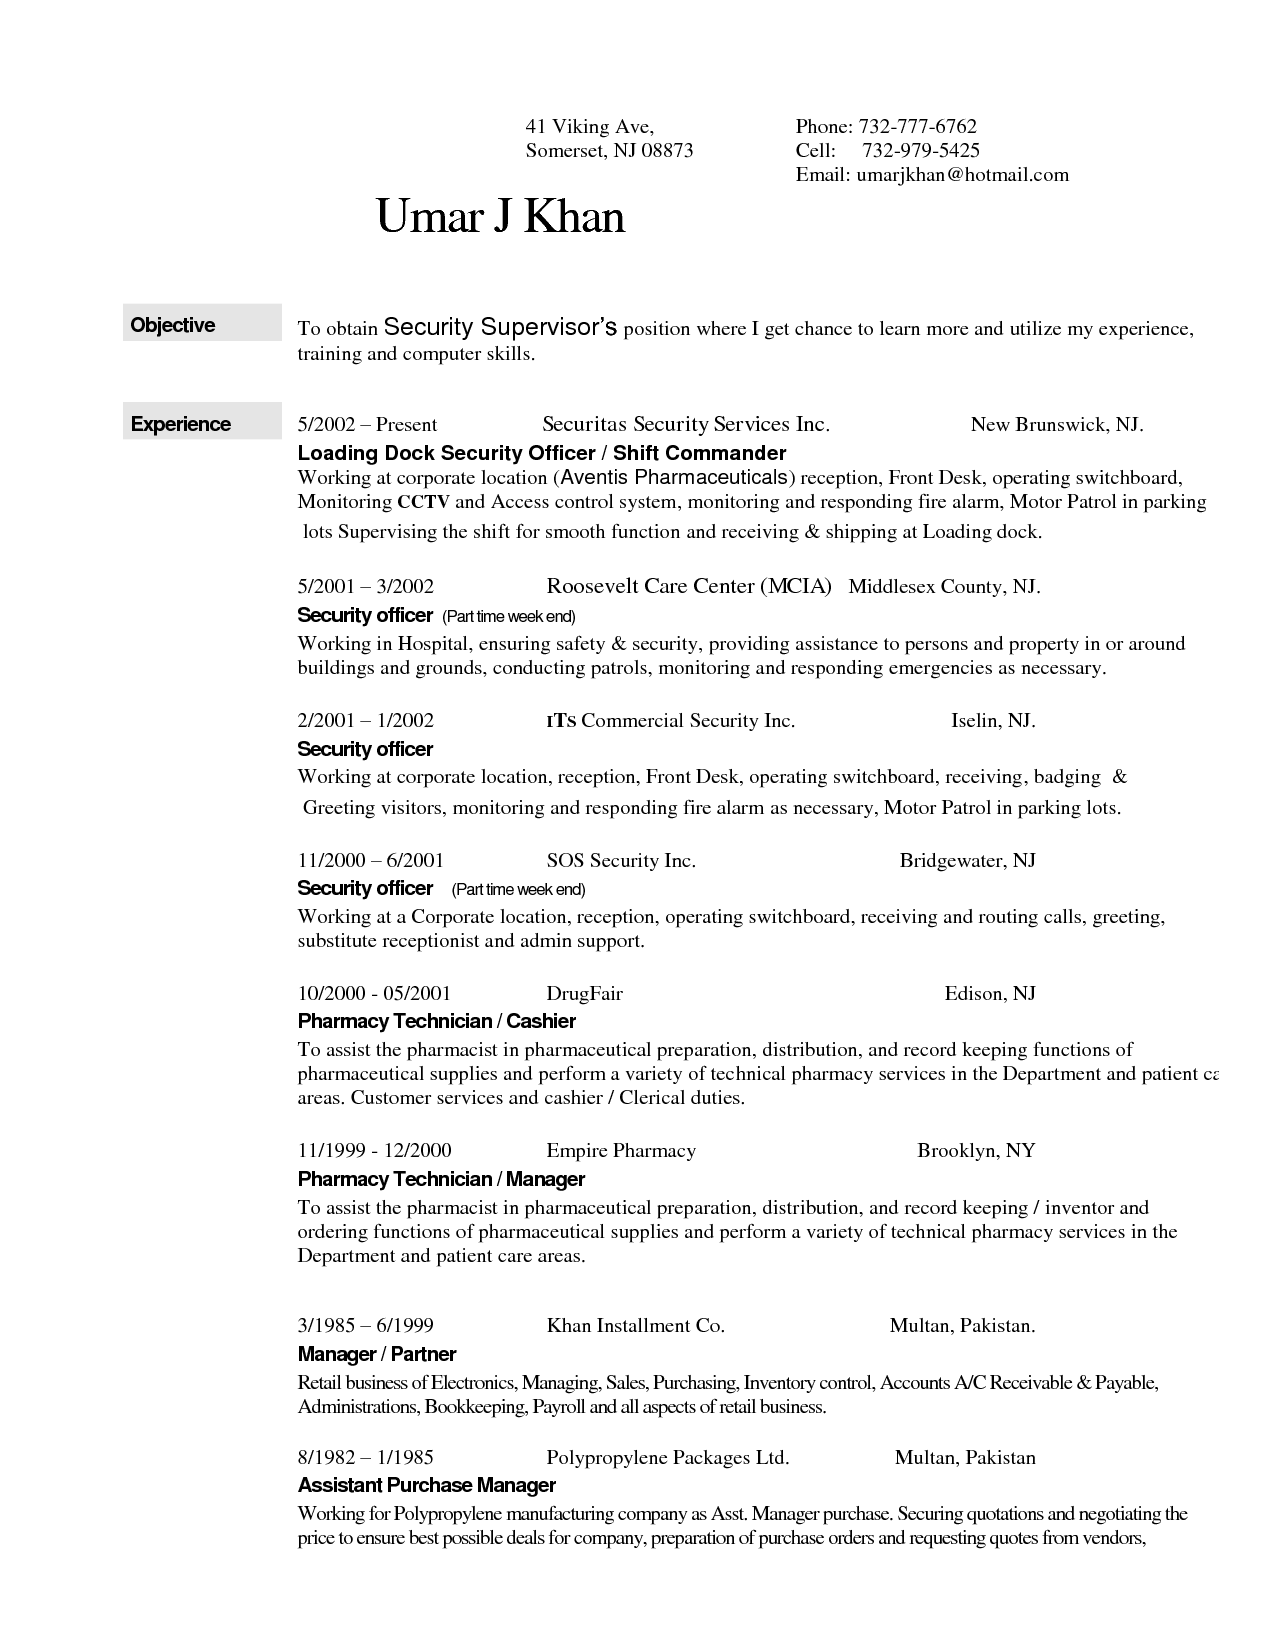 Example Of A Job Resume Entry Level Security Guard Resume Examples  Httpwwwjobresume